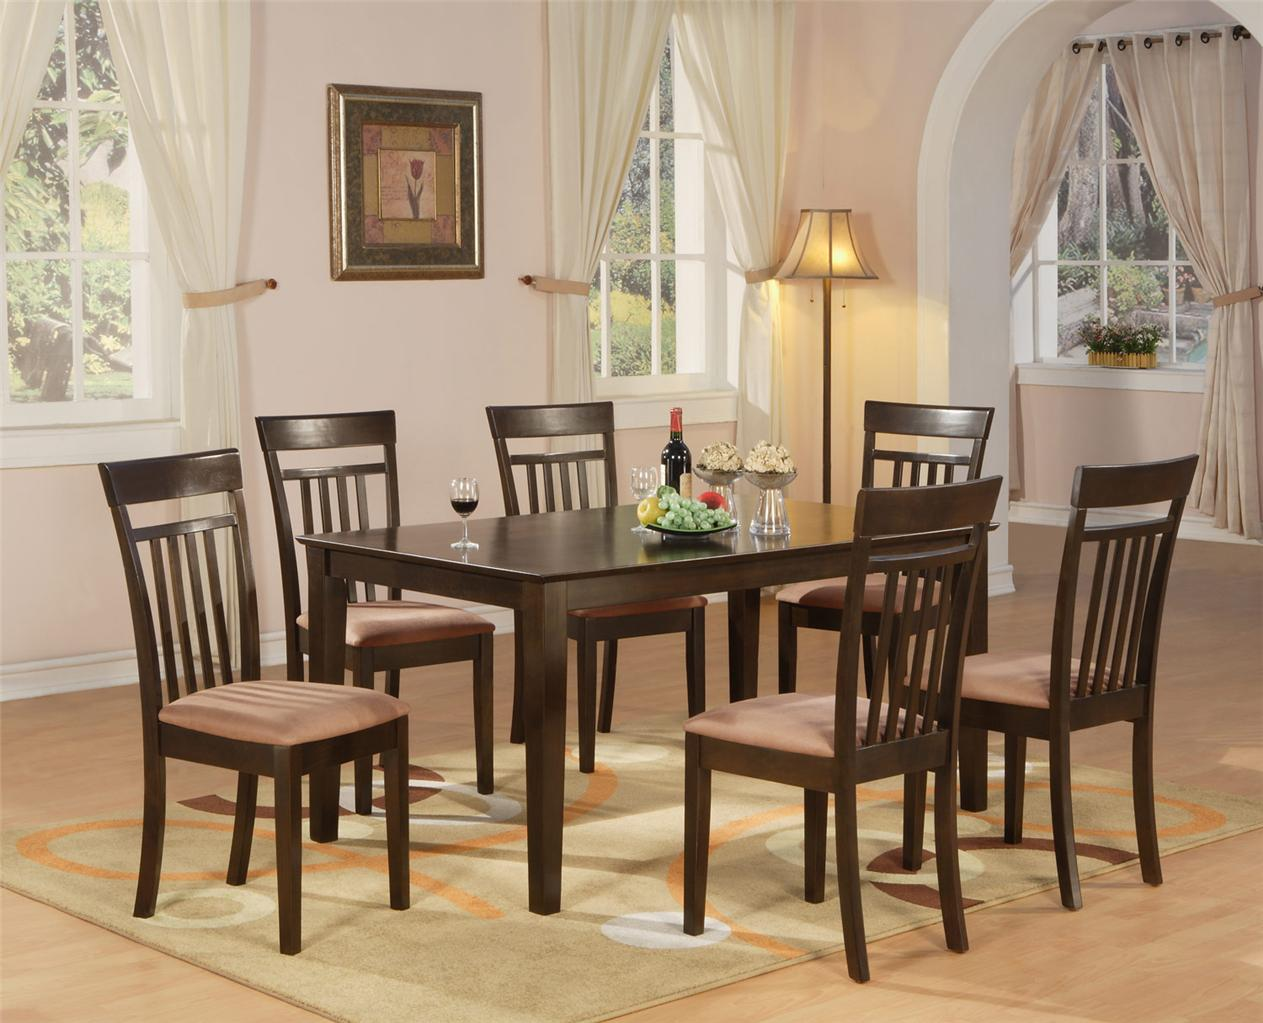 Kitchen And Dining Room Chairs Kitchen Dining Room Sets 2017 Grasscloth Wallpaper